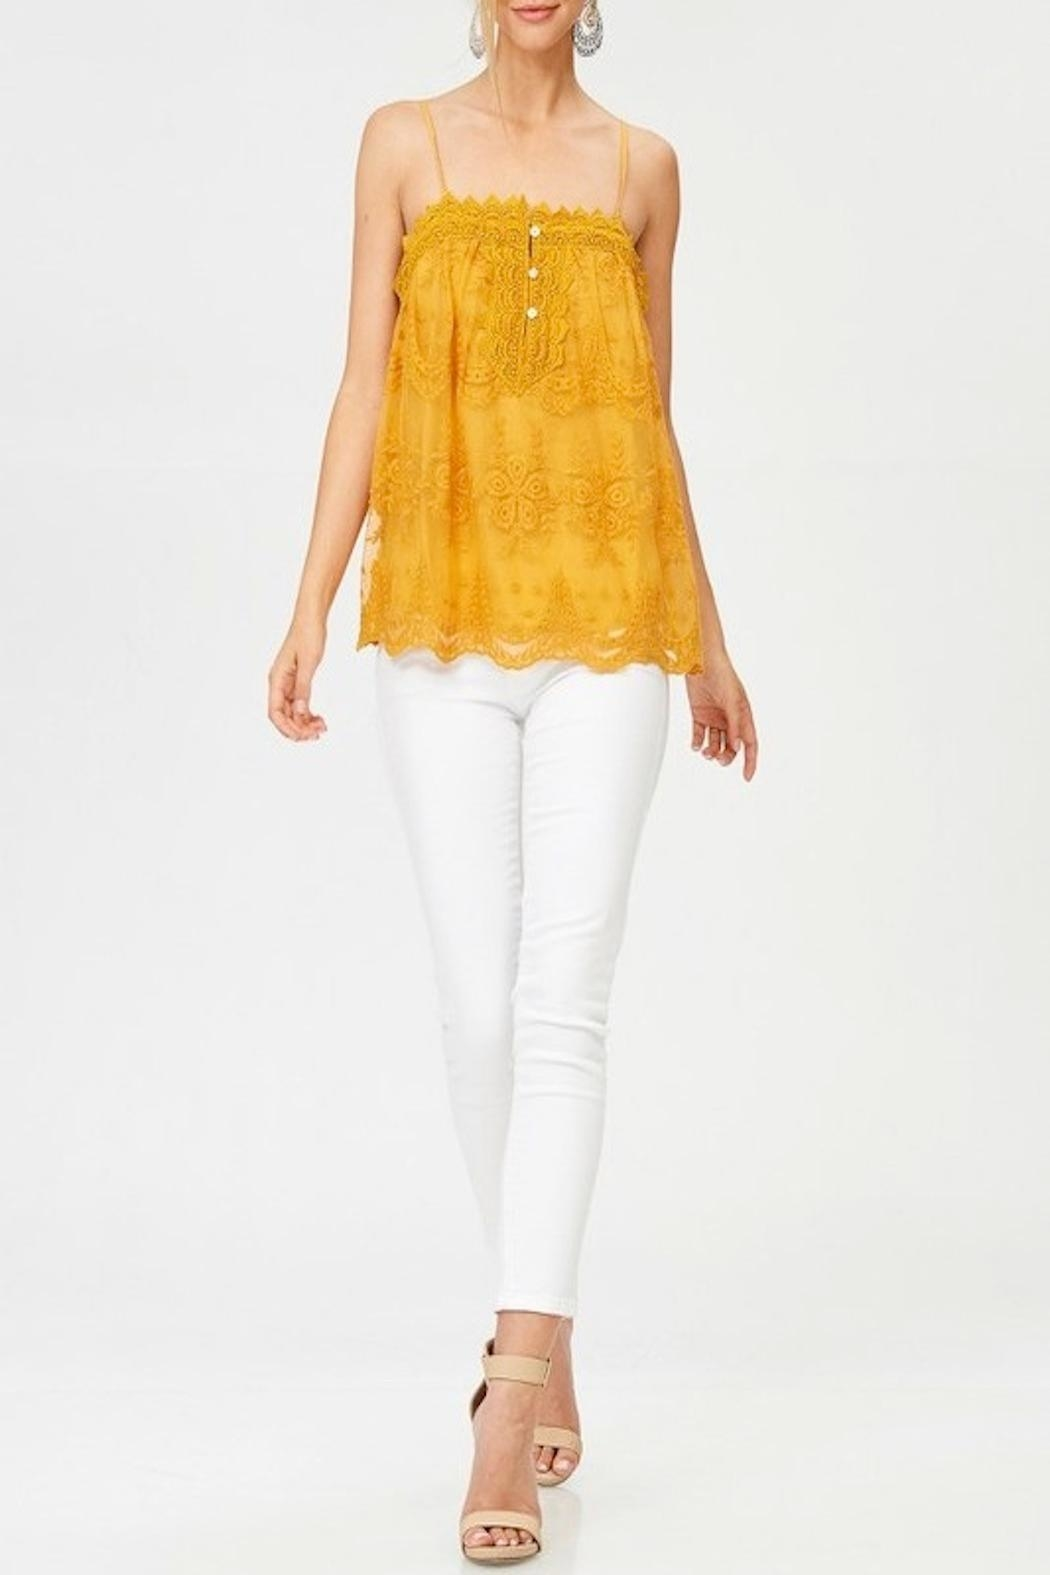 Apricot Lane St. Cloud Lace Button Up Top - Side Cropped Image